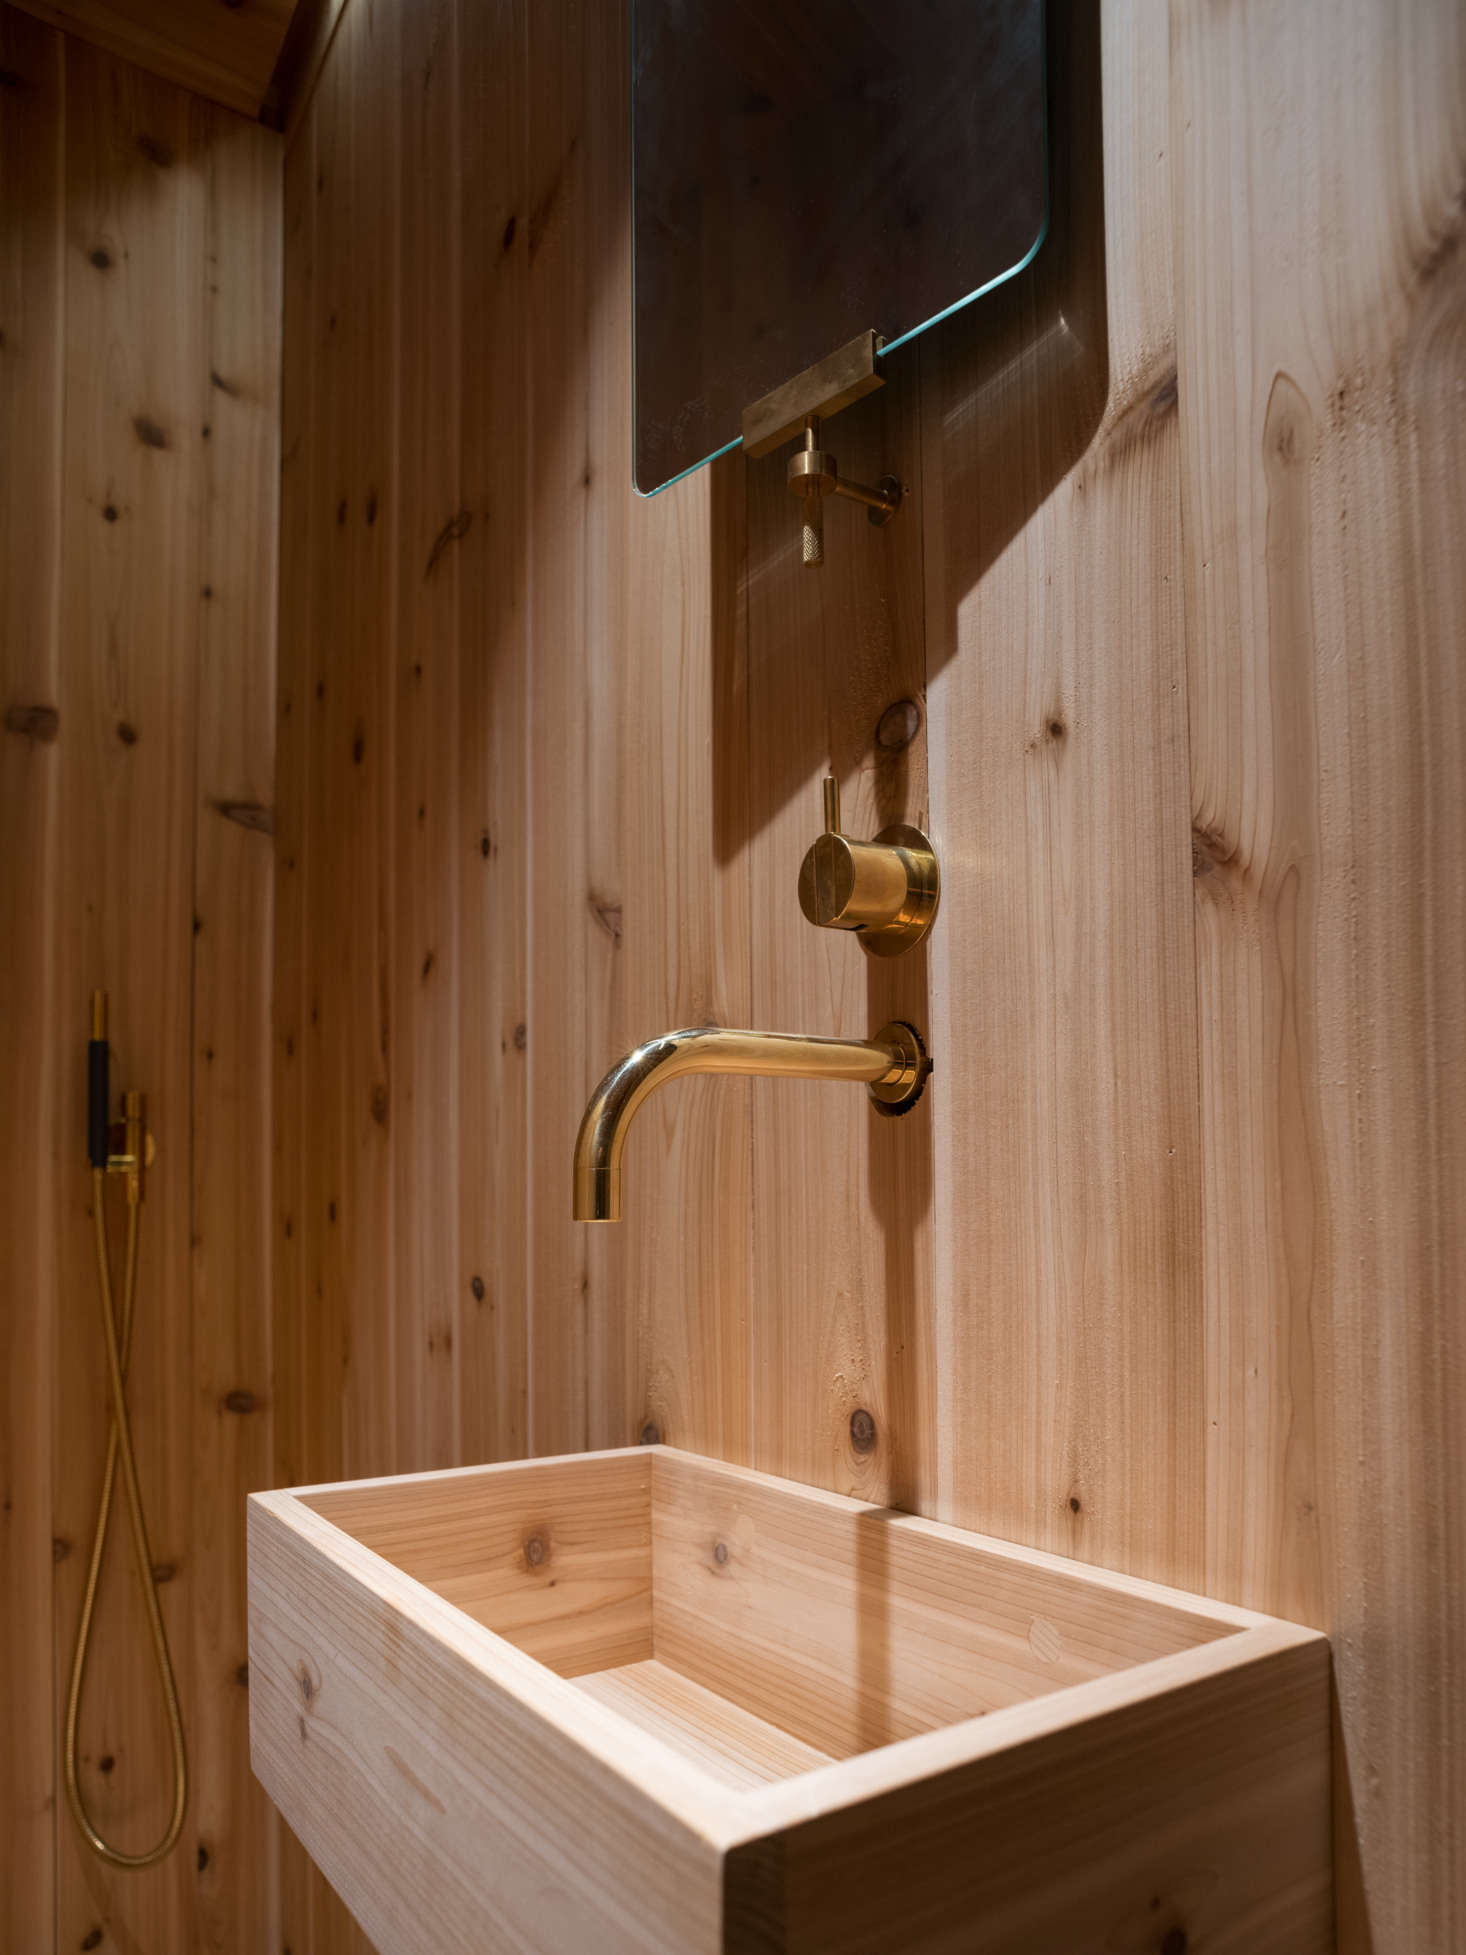 The brass fixtures are by Vola and the brass-framed mirror is the KBH Mirror.